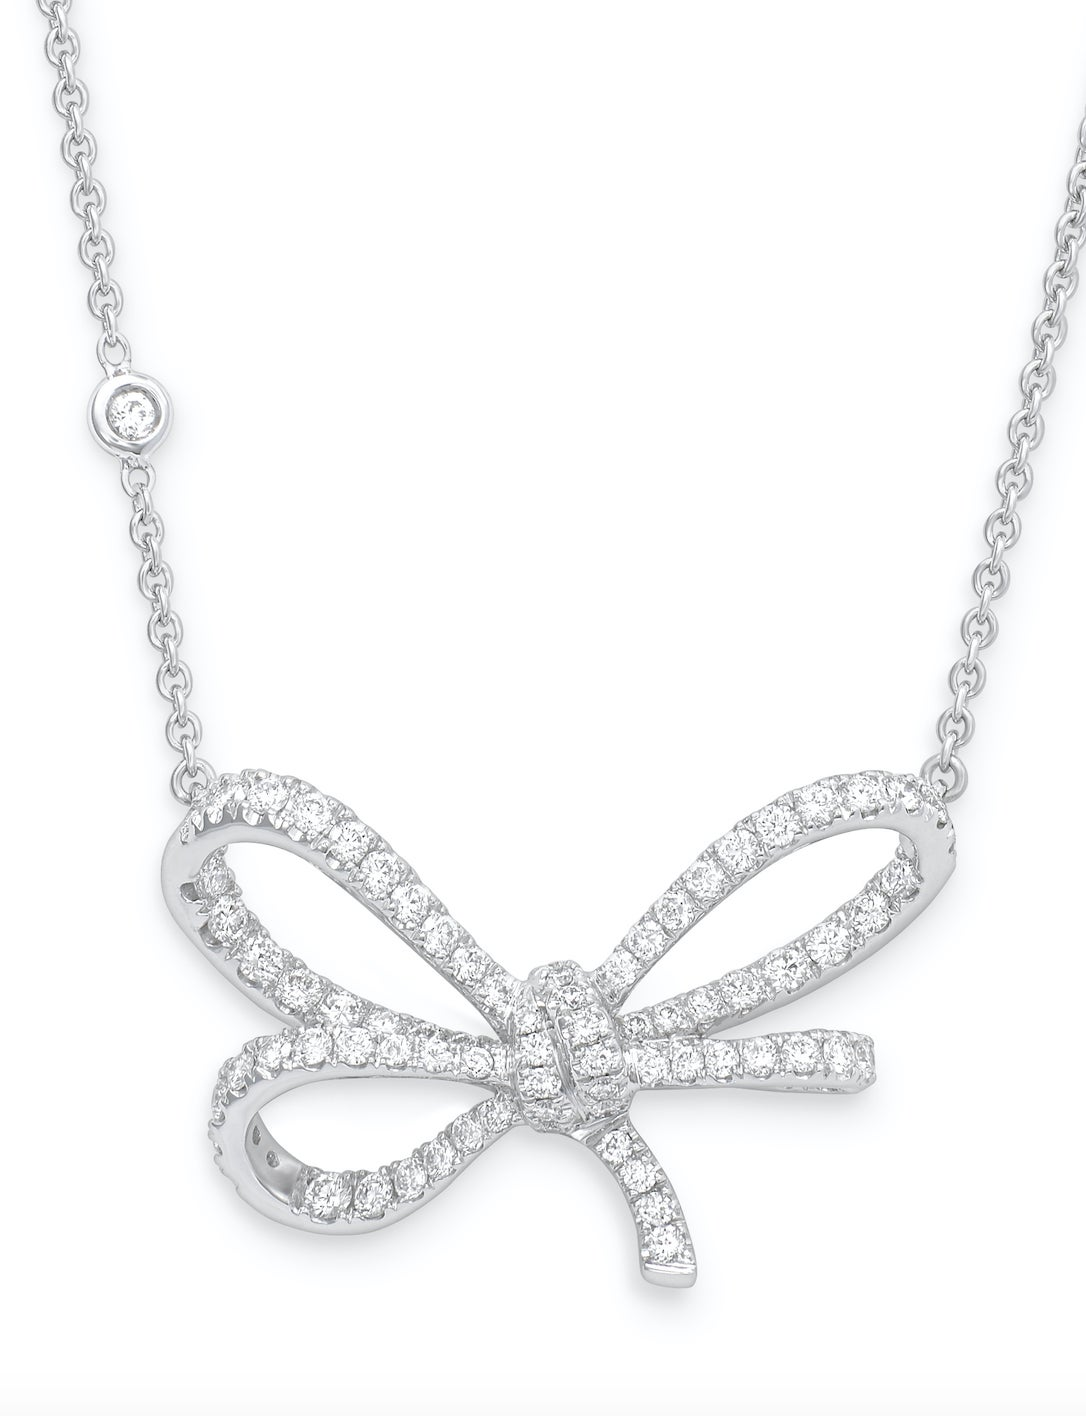 Vanleles diamond gold lylas bow pendant for sale at 1stdibs aloadofball Images